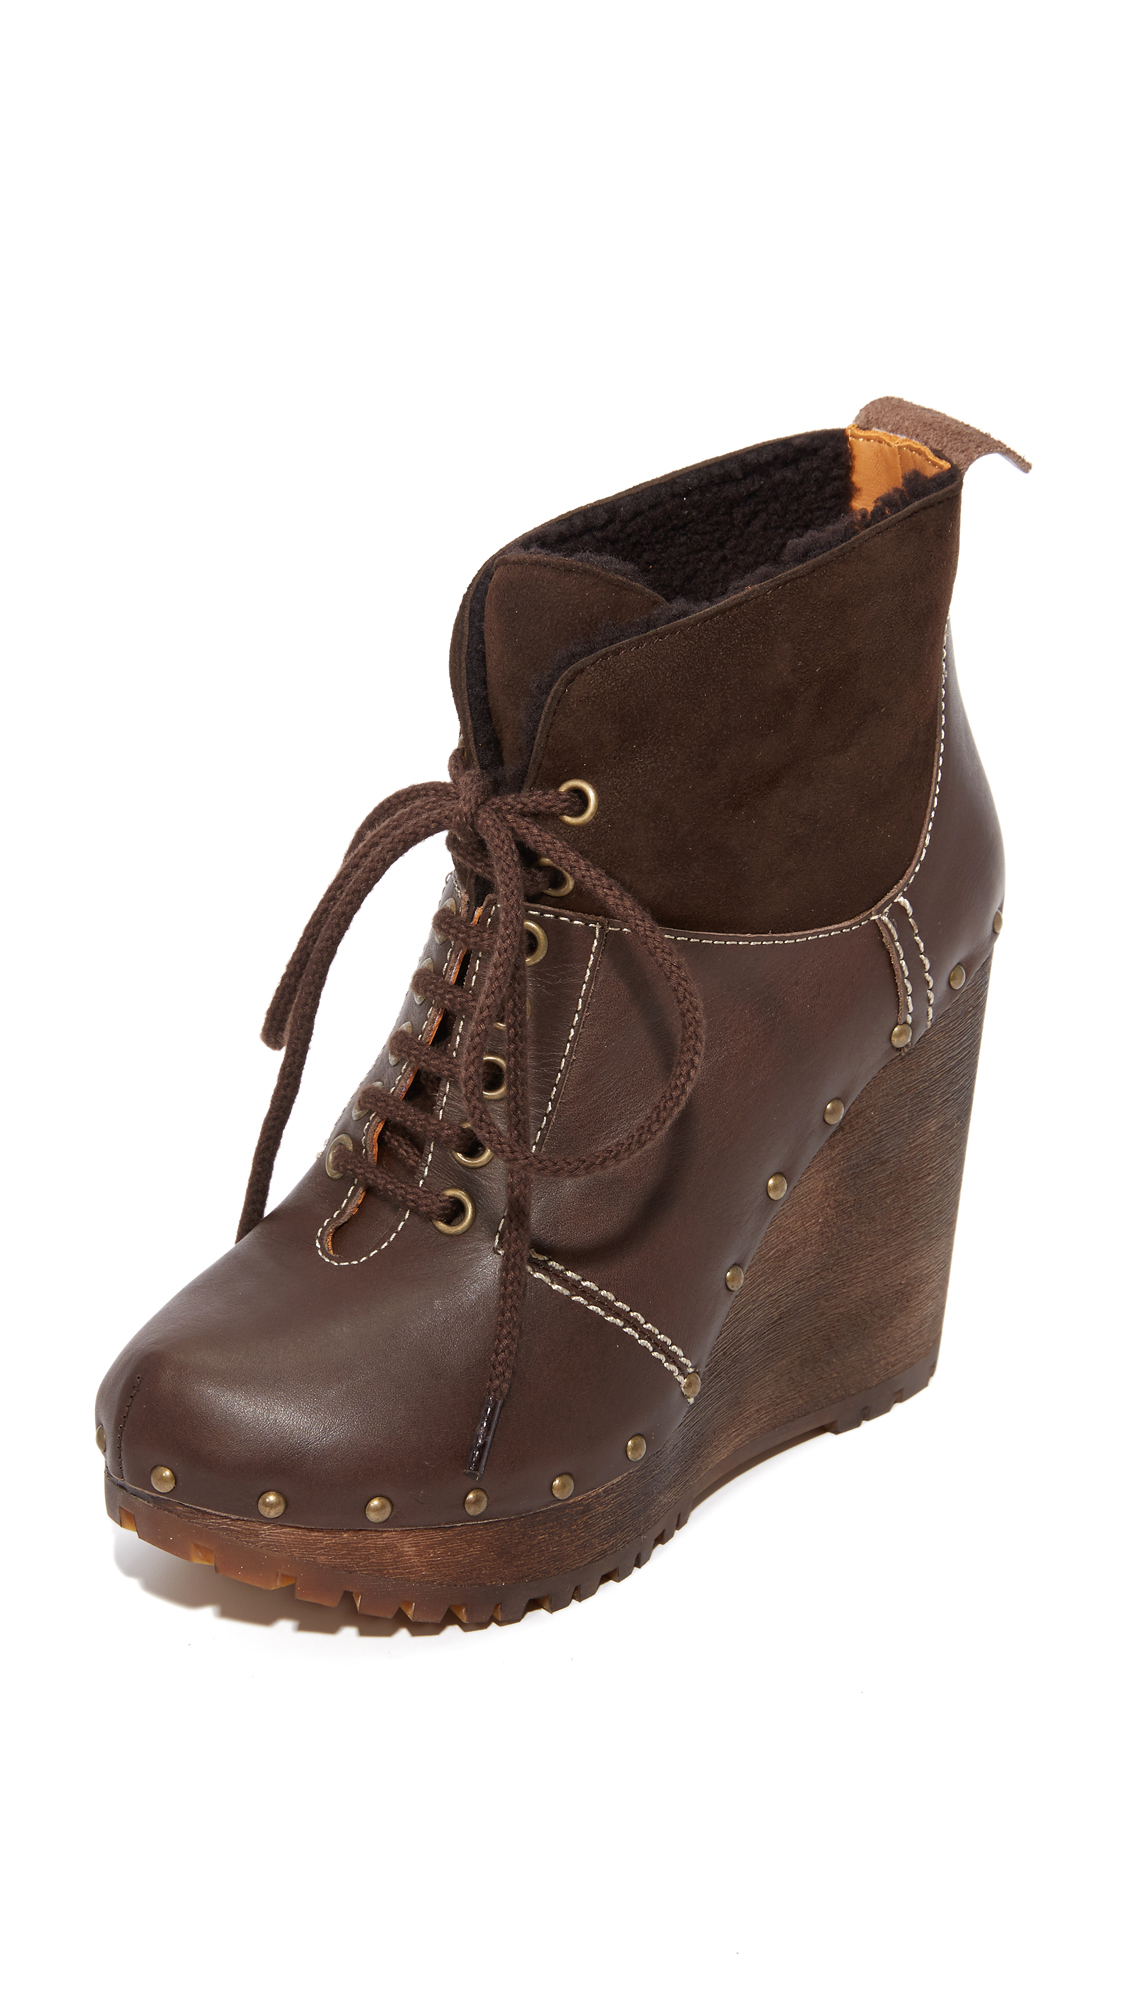 See By Chloe Clive Platform Lace Up Booties - Mouse